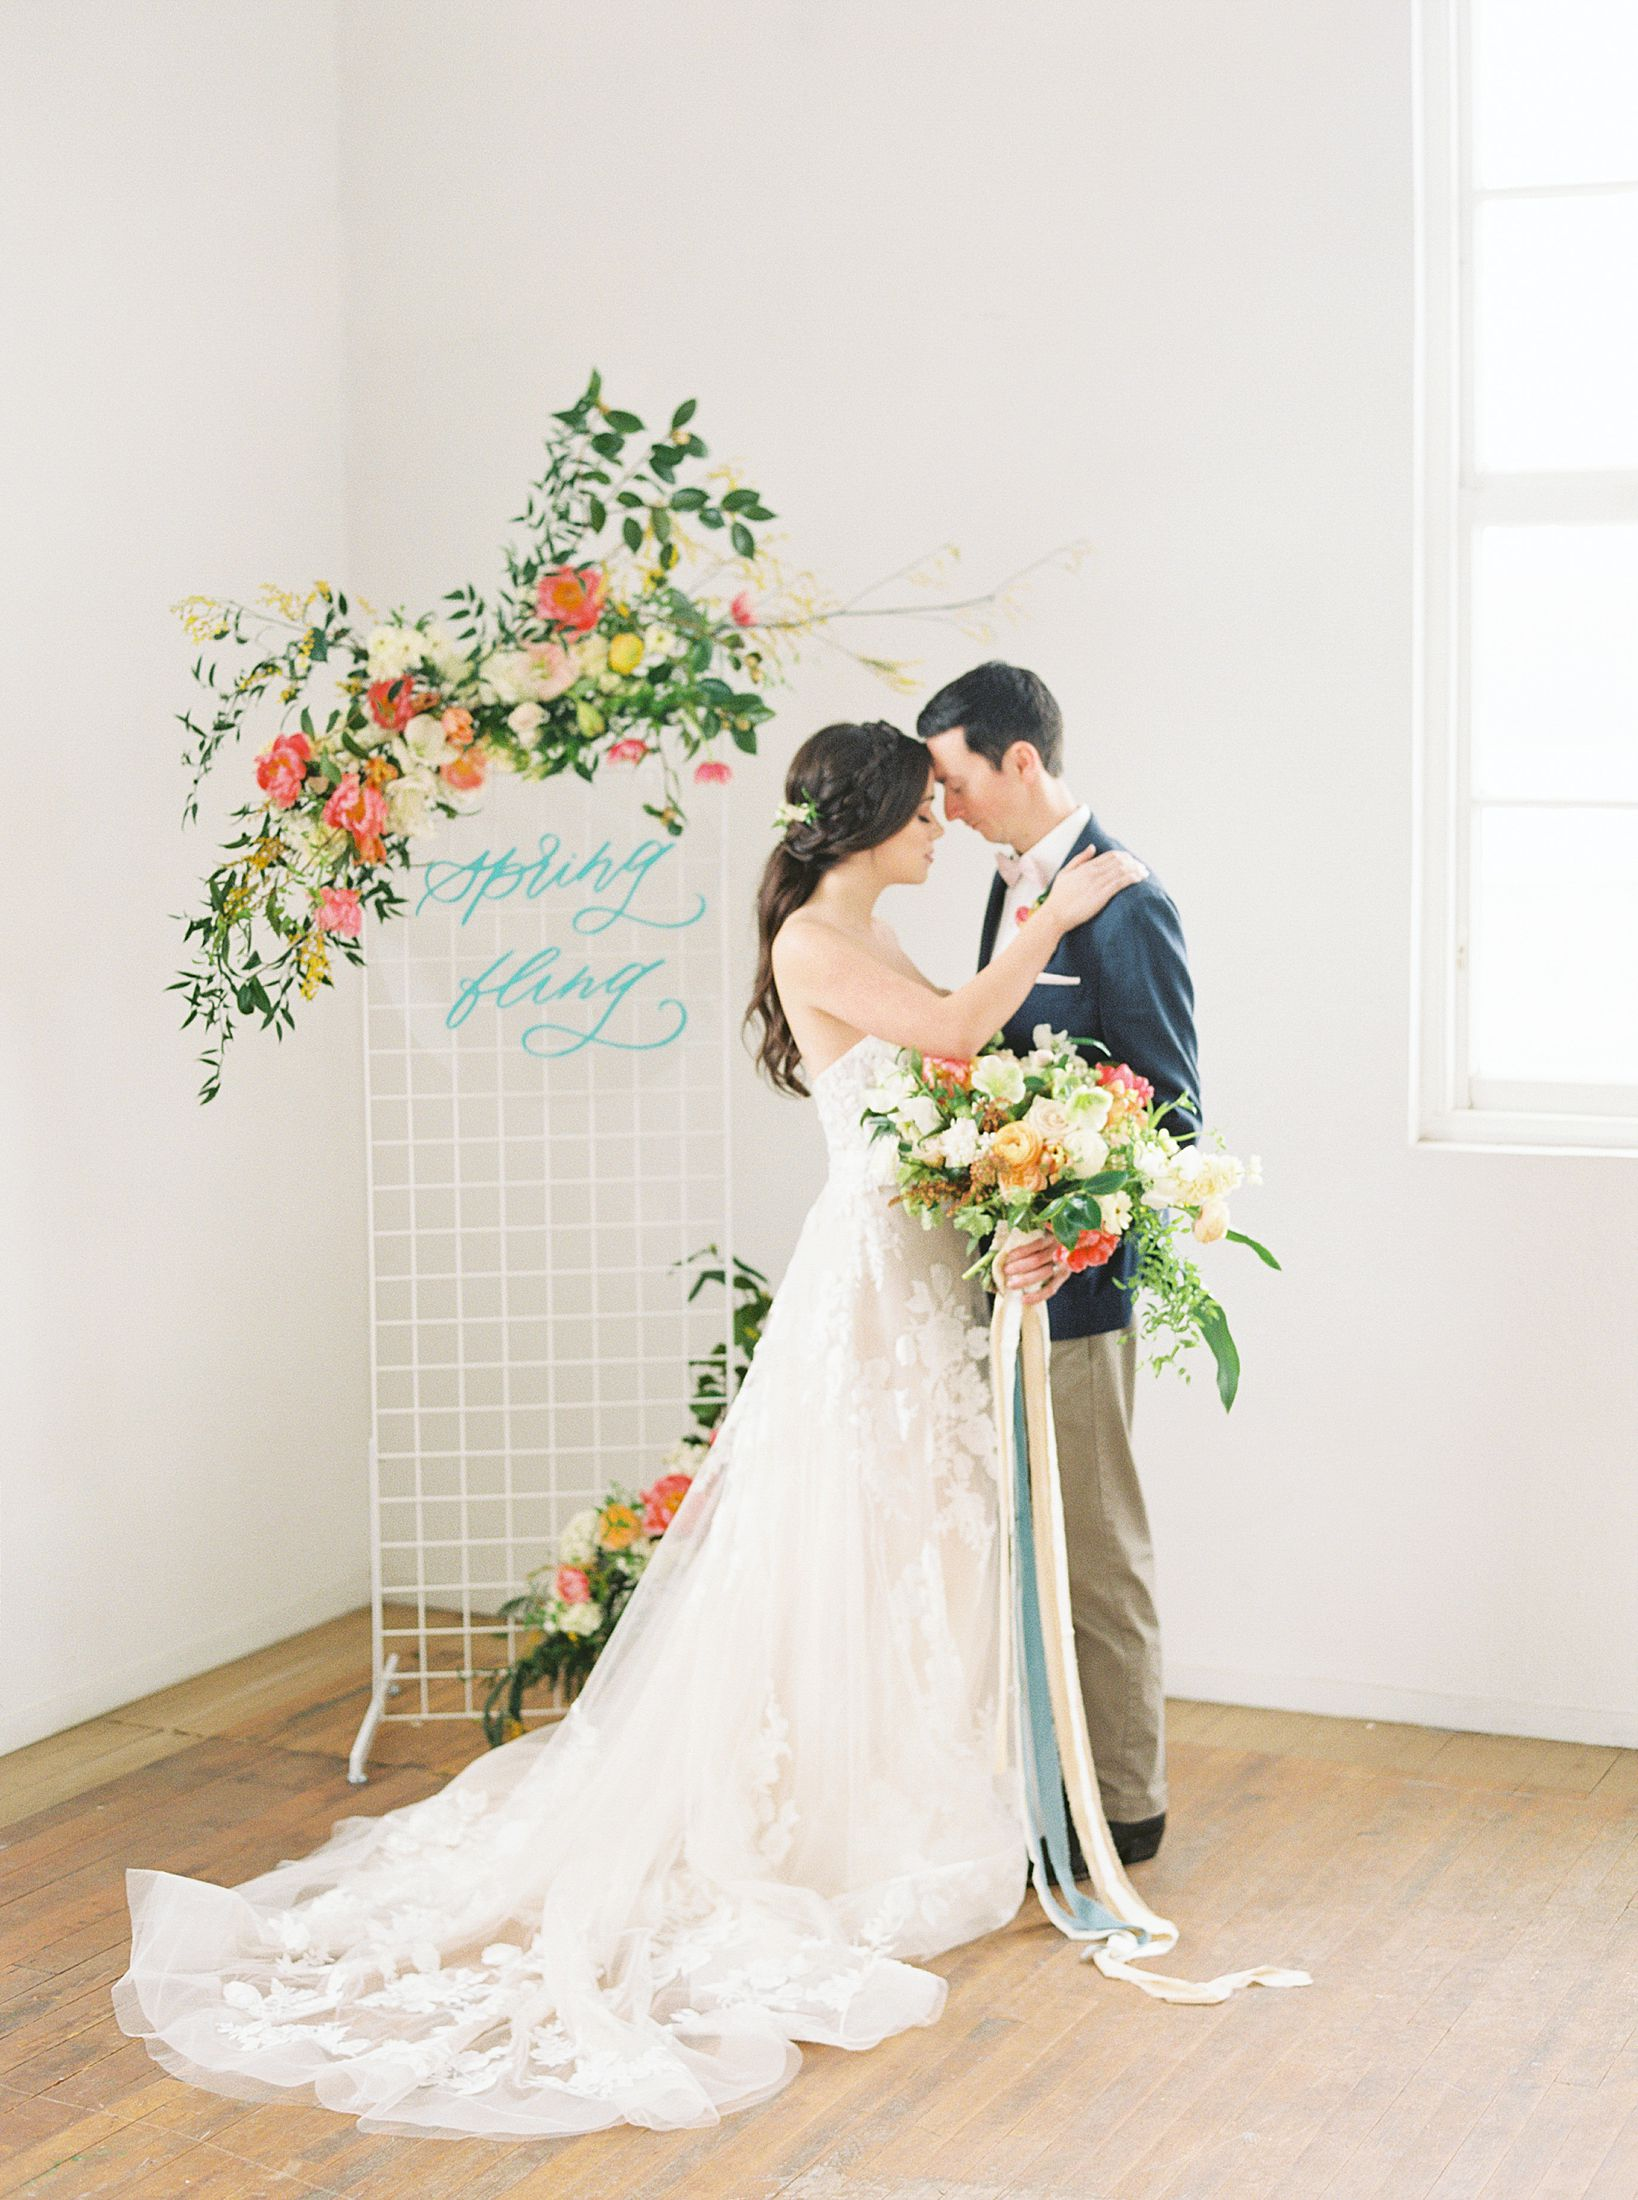 Bay Area Spring Wedding Inspiration - Ashley Baumgartner - Inspired By This - Party Crush Studio and Lens of Lenox Videography - Bay Area Wedding Photography_0030.jpg